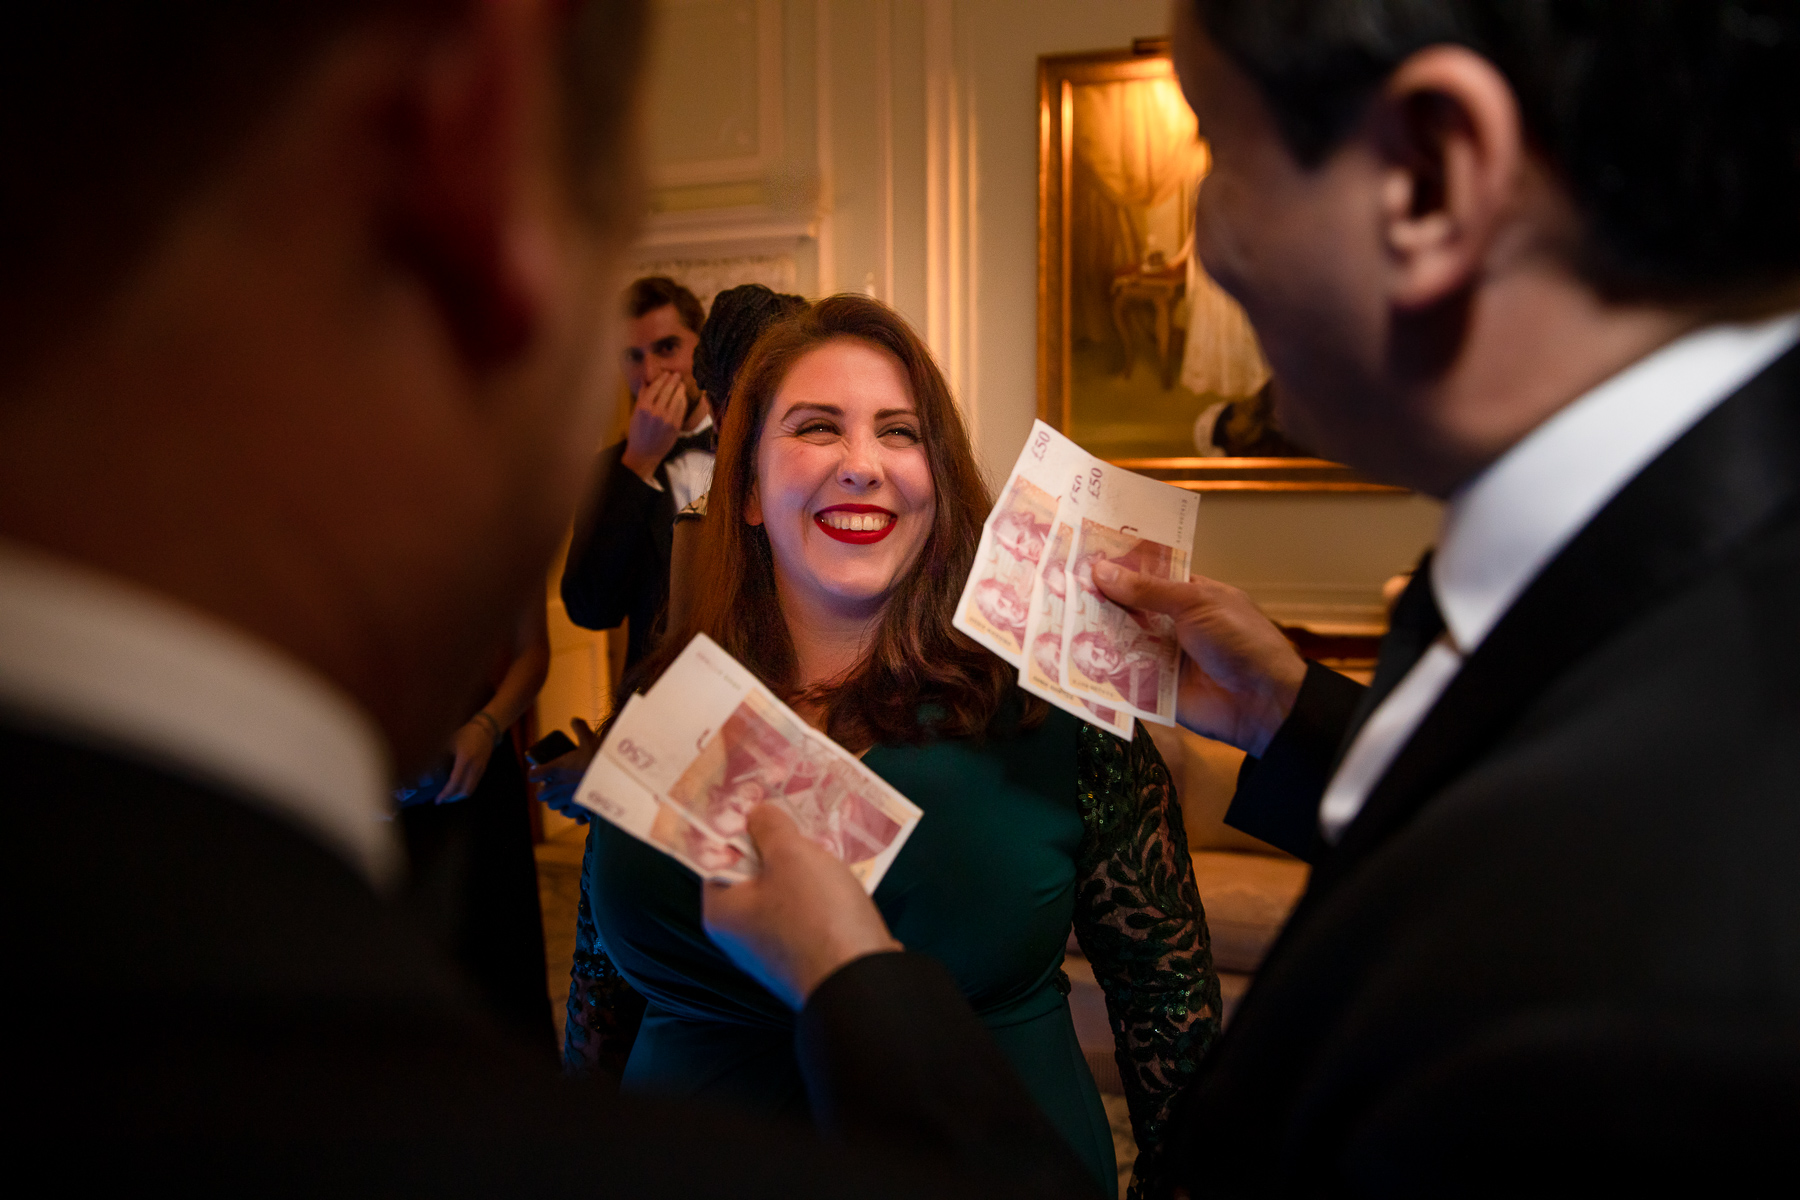 Brocket-Hall-Darryl-Rose-Magician-007-event